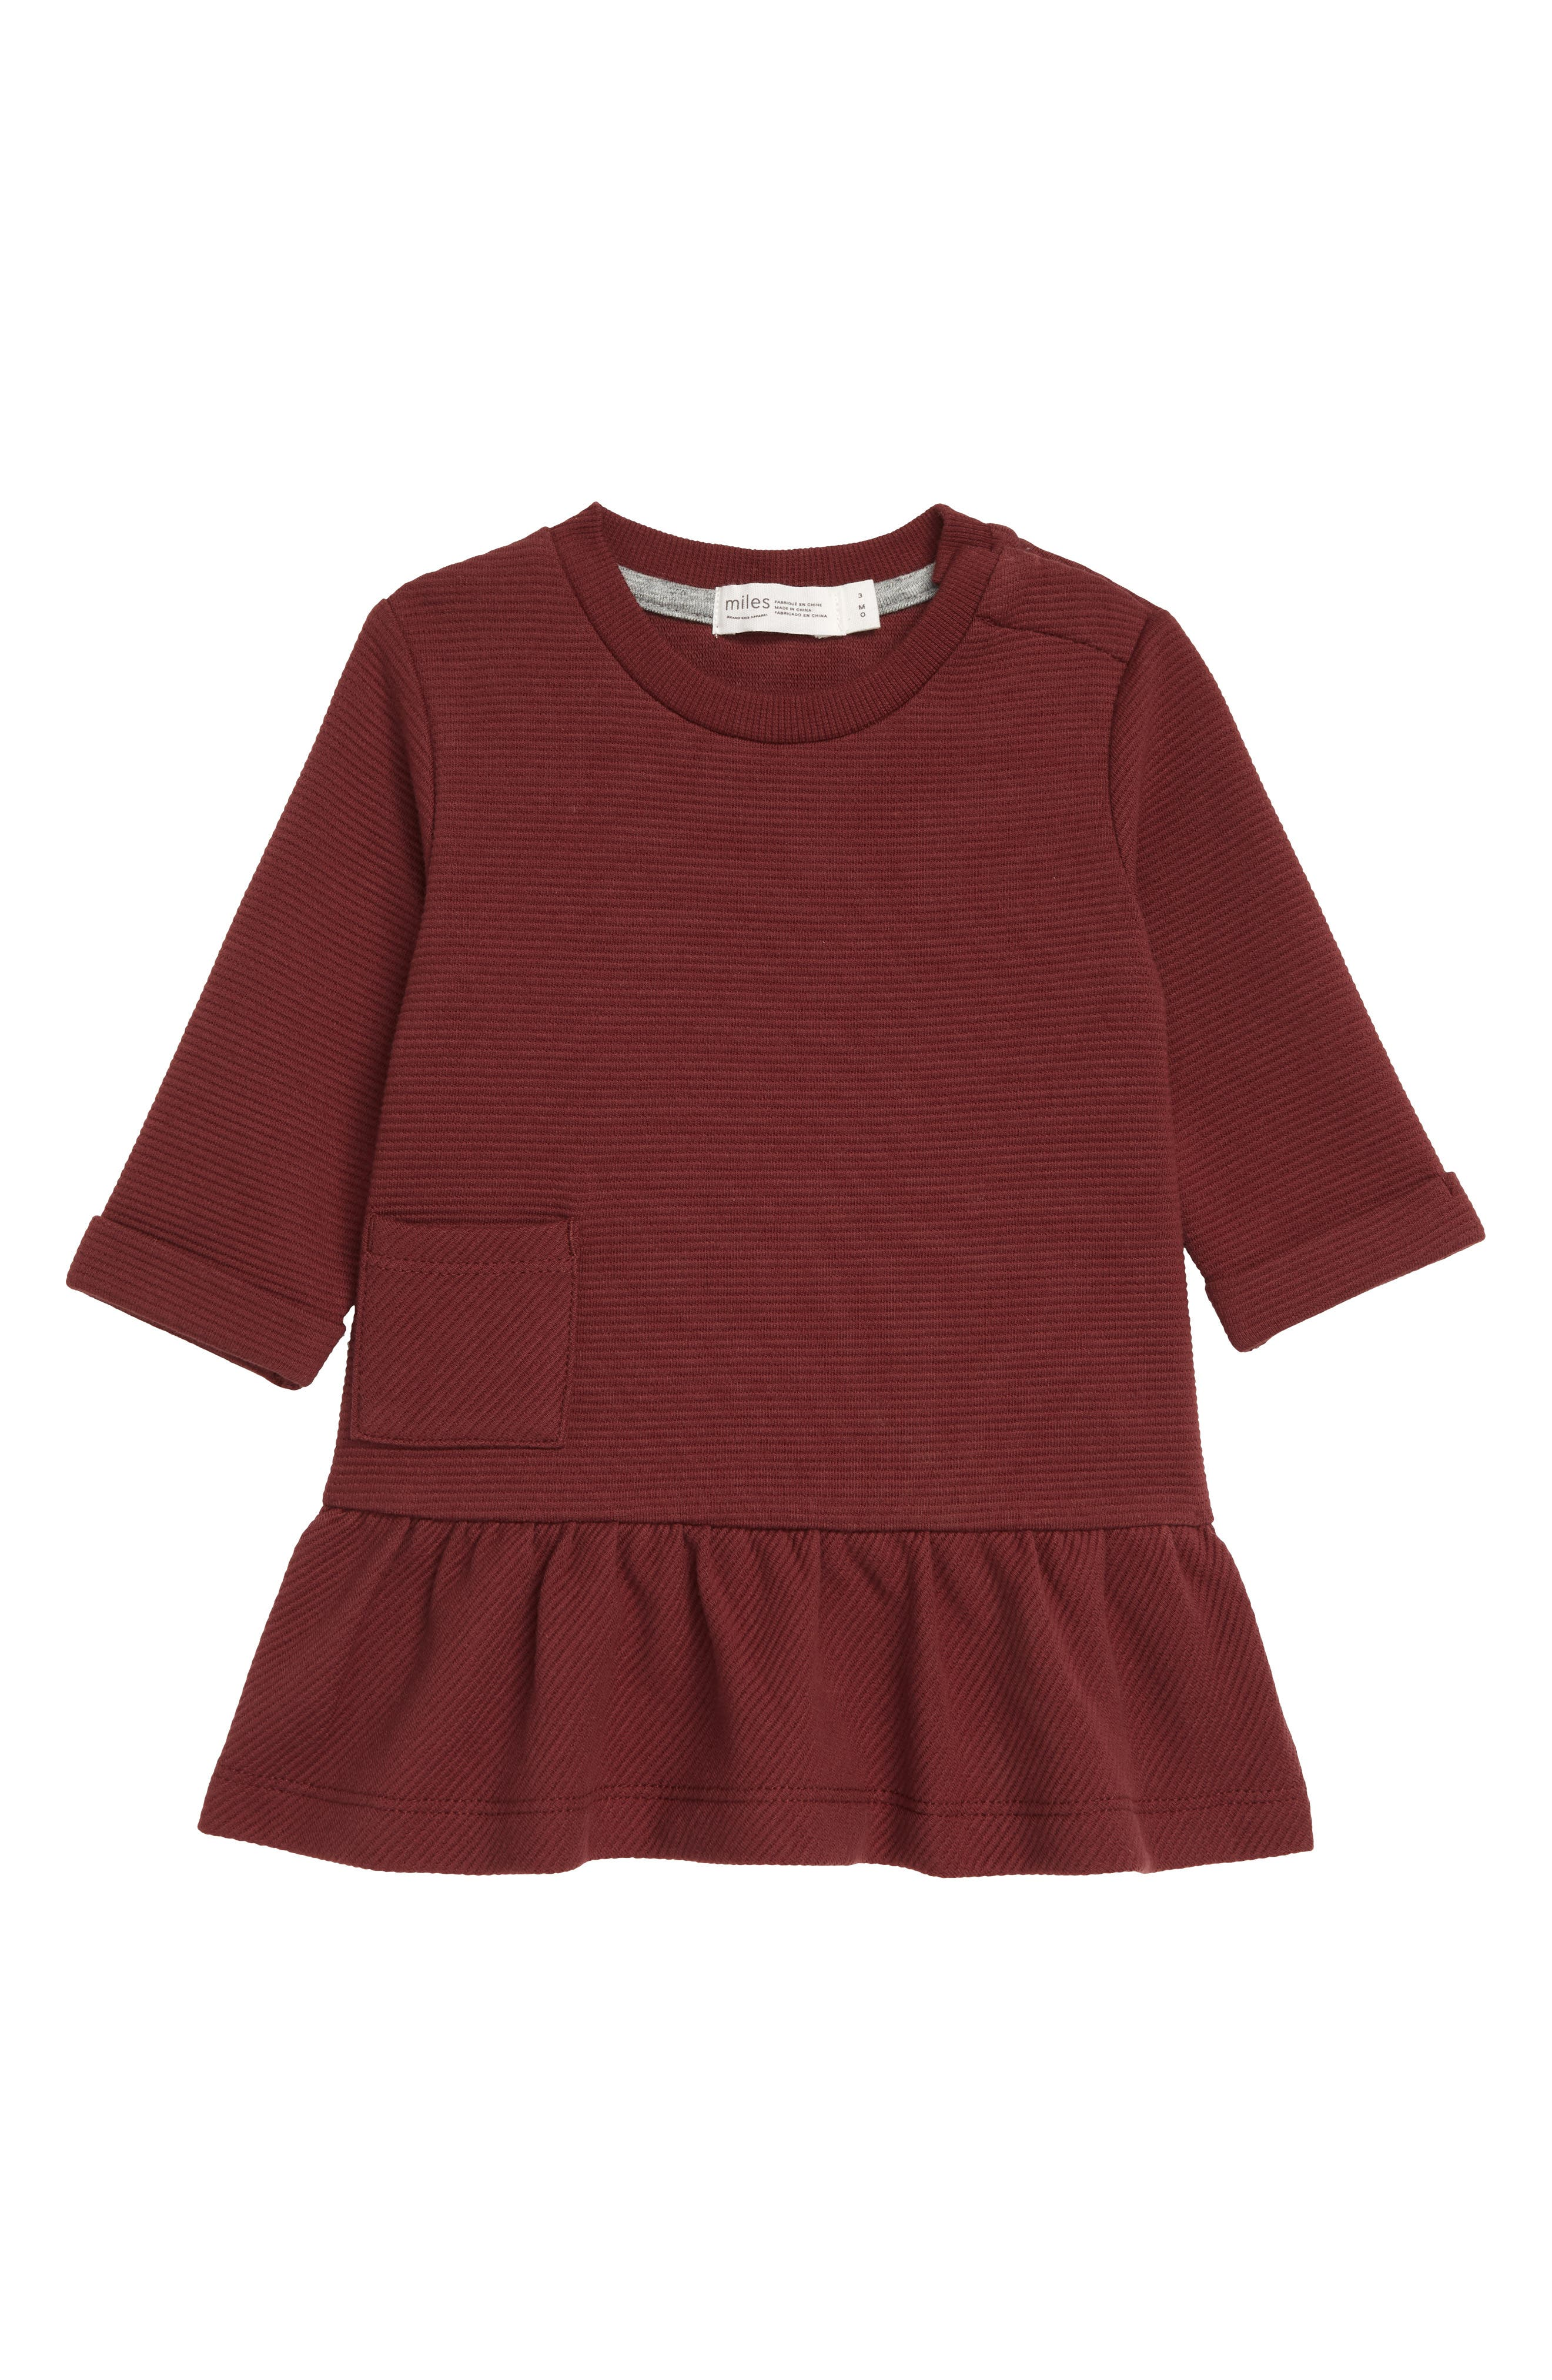 Your little one will look extra sweet in this ottoman knit dress with long sleeves and a ruffled hem. Style Name: Miles Knit Ruffle Hem Dress (Baby). Style Number: 6087367. Available in stores.